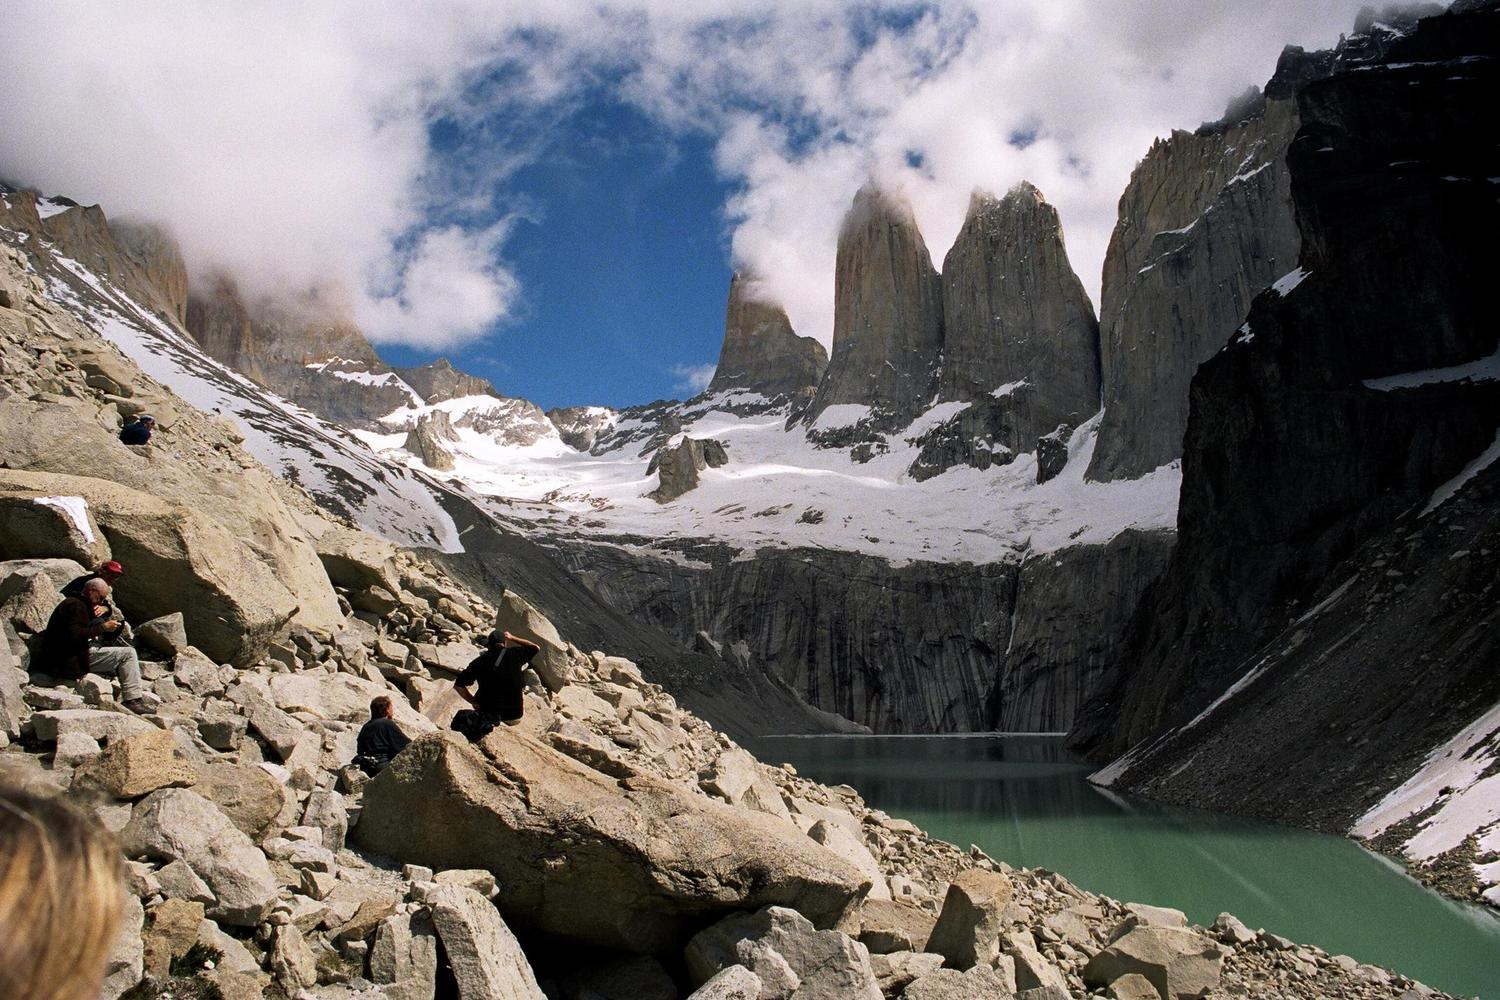 The glacial lake at the foot of the mile-high towers of Torres del Paine